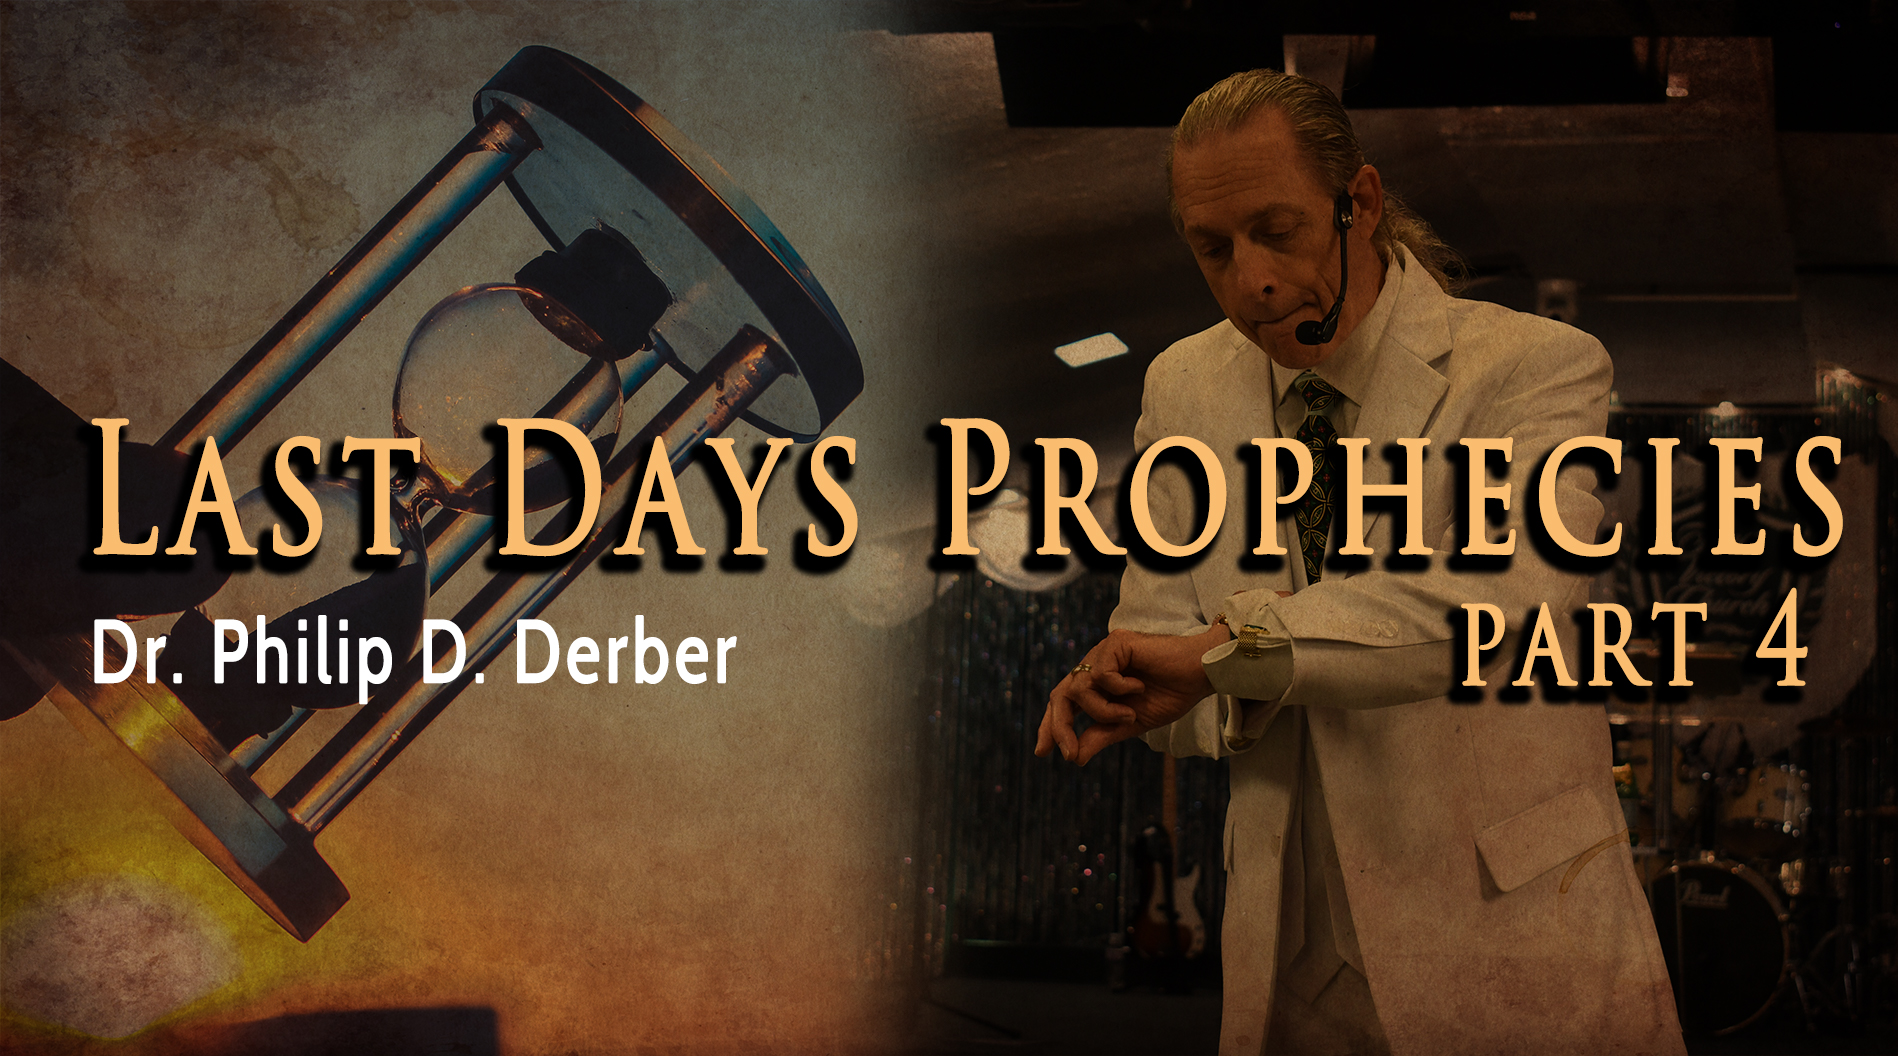 Last Days Prophecies 4